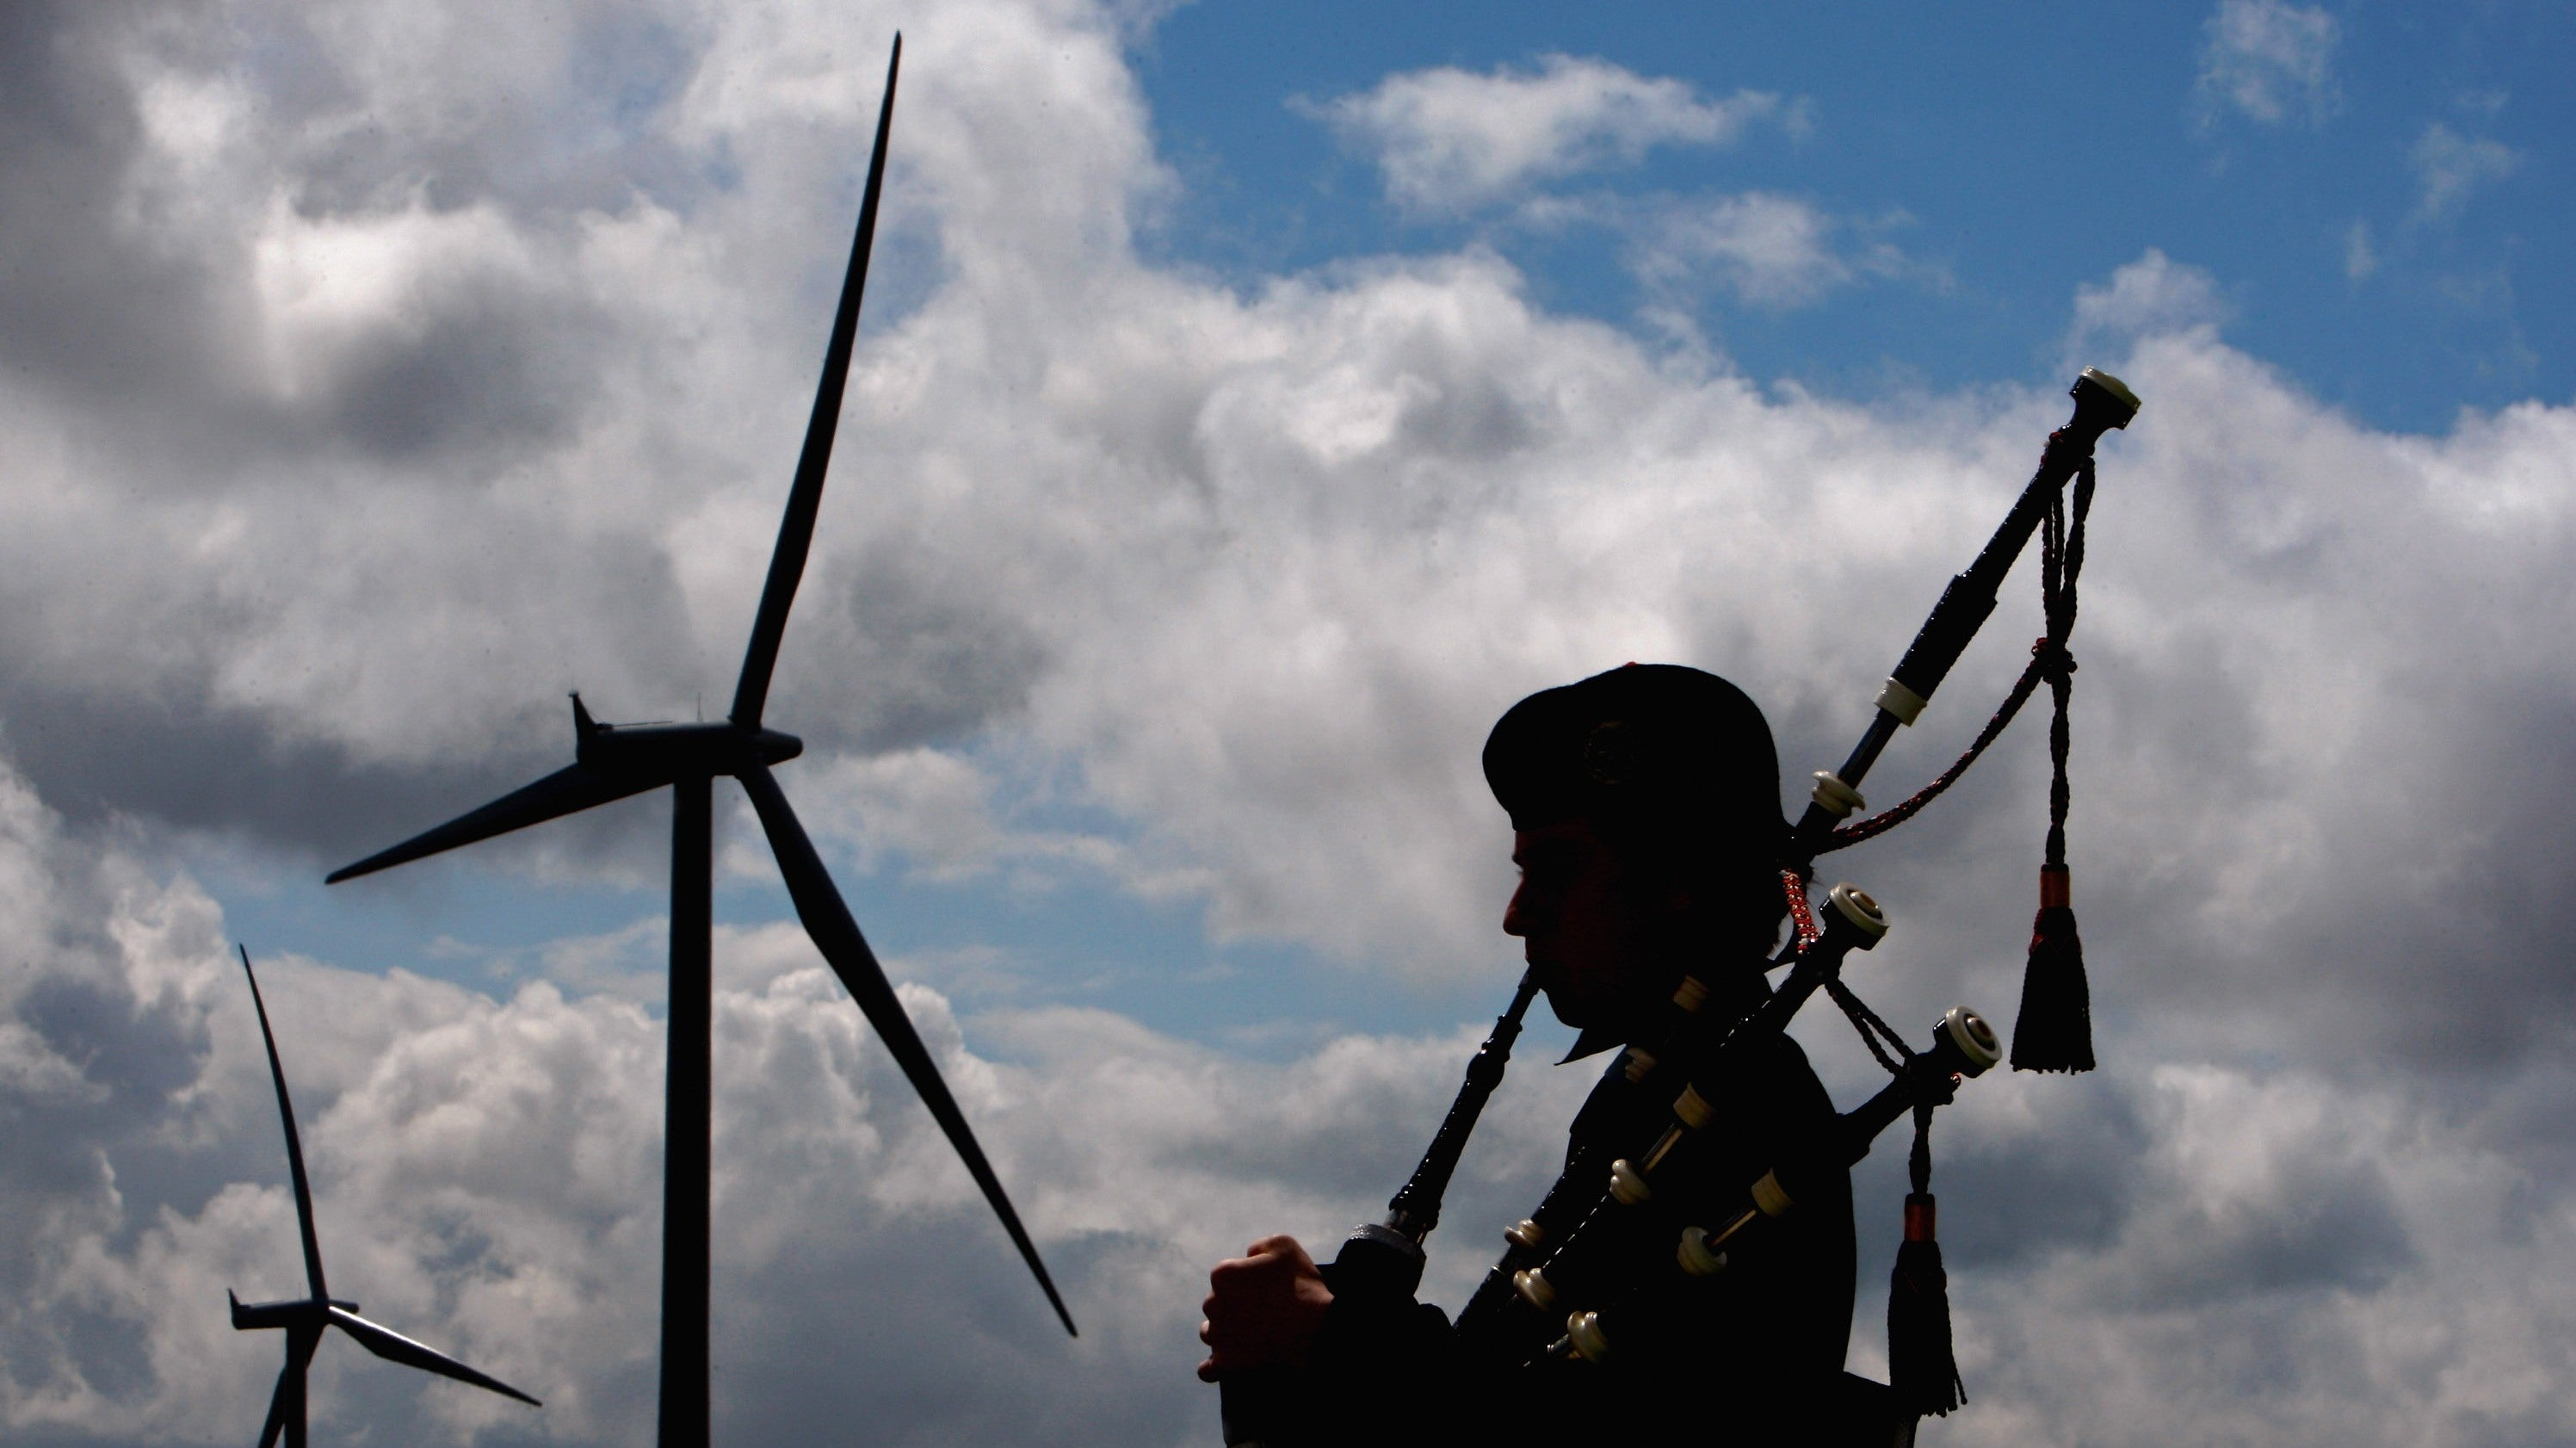 Scotland Is On Track To Hit 100 Per Cent Renewable Energy This Year, Slàinte Mhath!